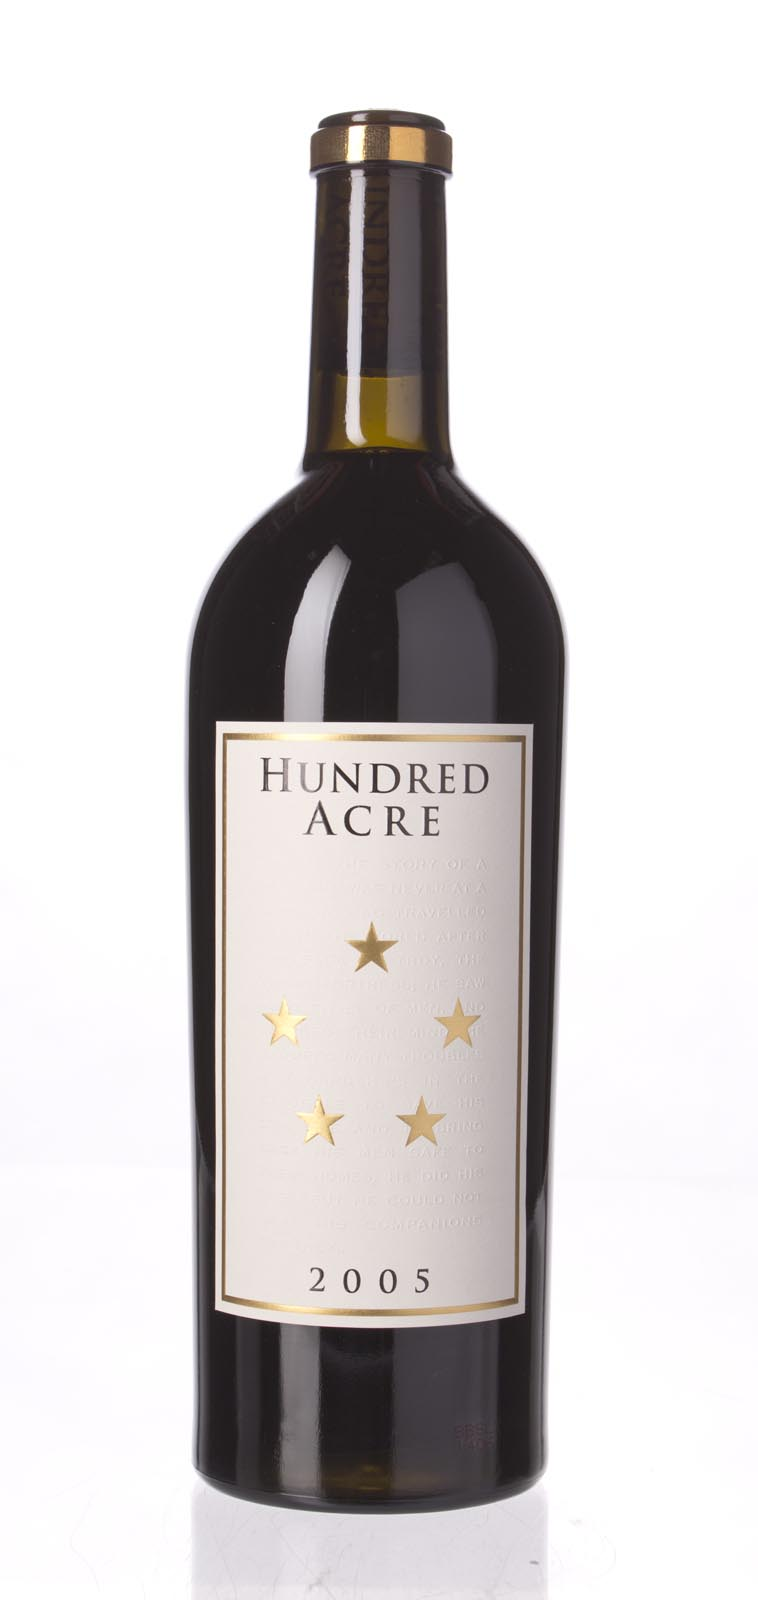 Hundred Acre Shiraz Ancient Way Vineyard Summer`s Blocks 2005, 750ml (WS93) from The BPW - Merchants of rare and fine wines.